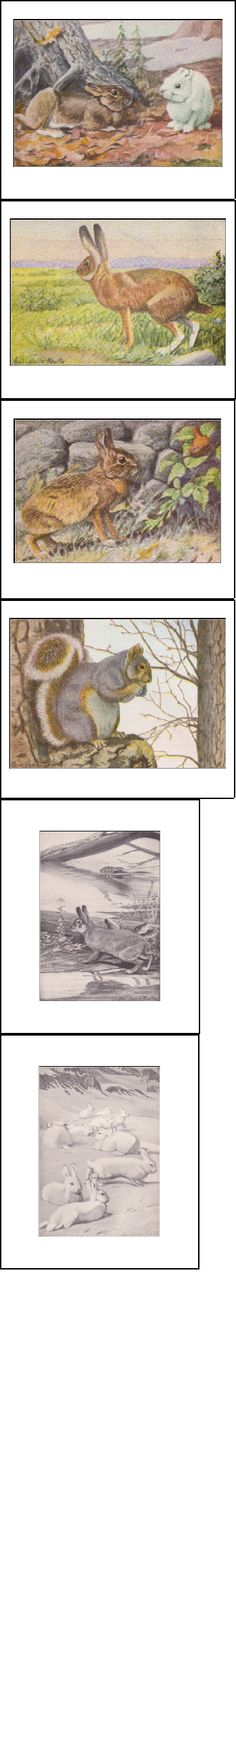 Pictures Of The Animals In Burgess Animal Book